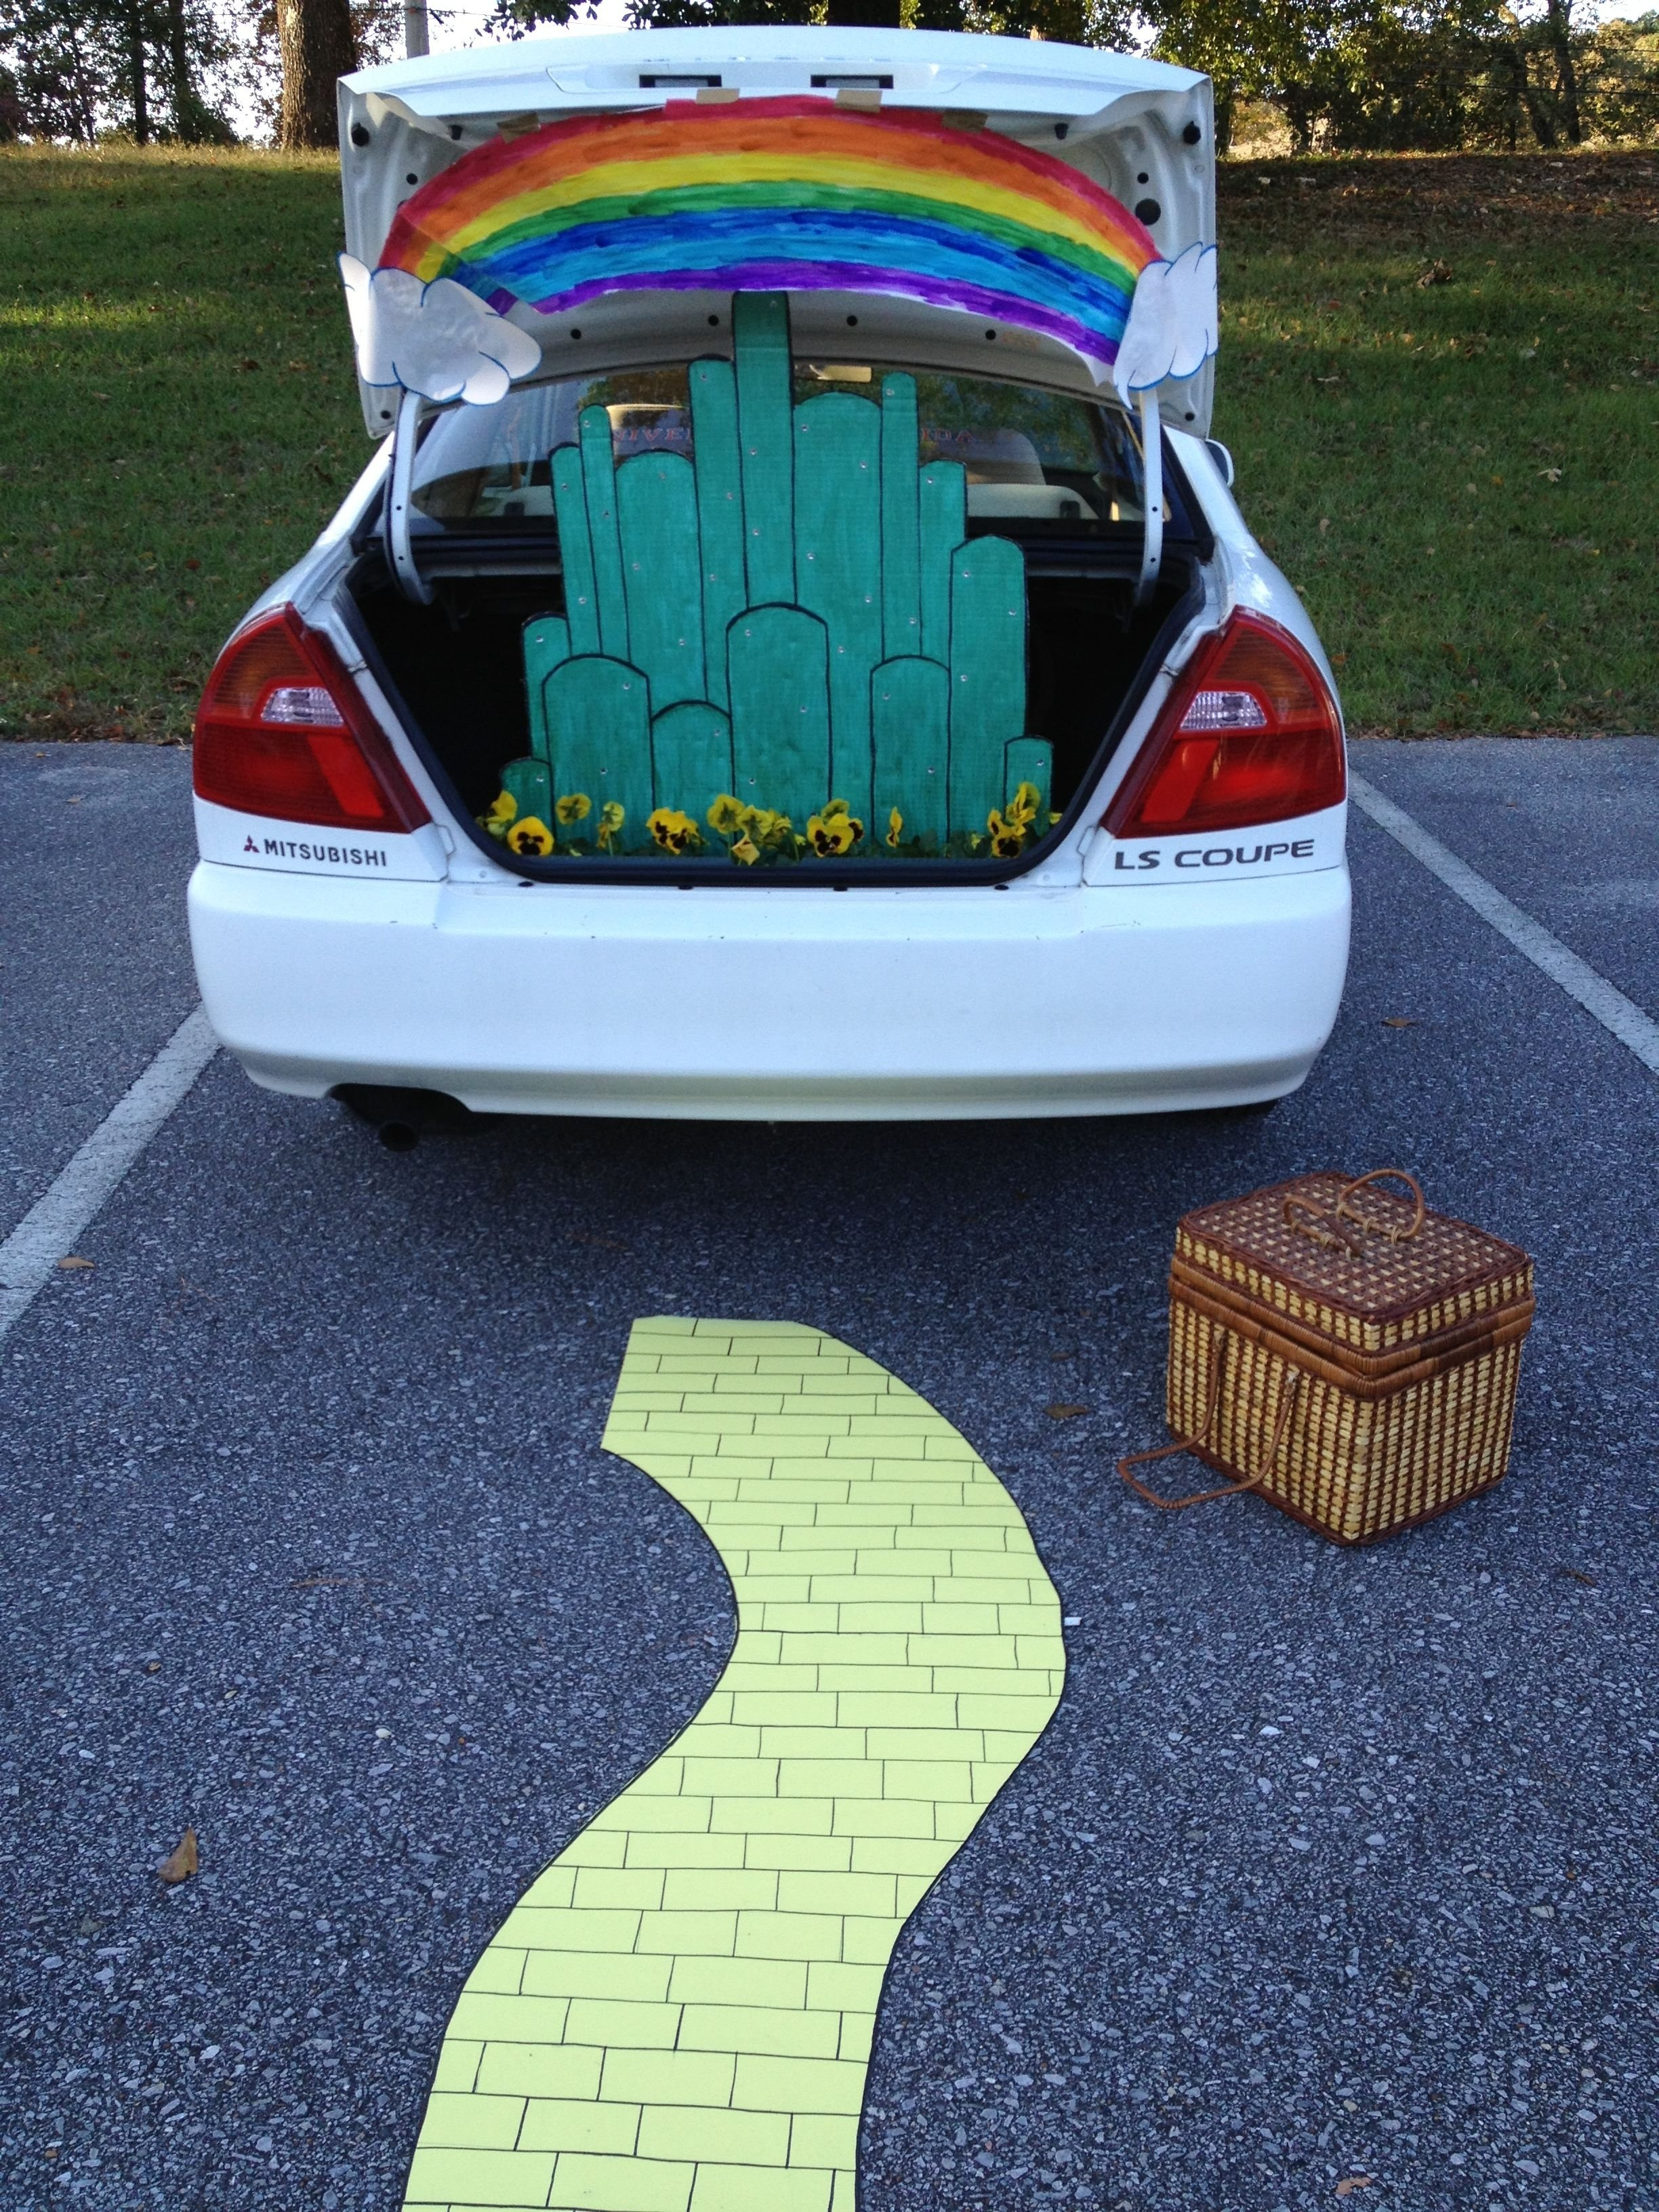 10 Perfect Easy Trunk Or Treat Decorating Ideas 19 easy and clever trunk or treat ideas churches holidays and 1 2020